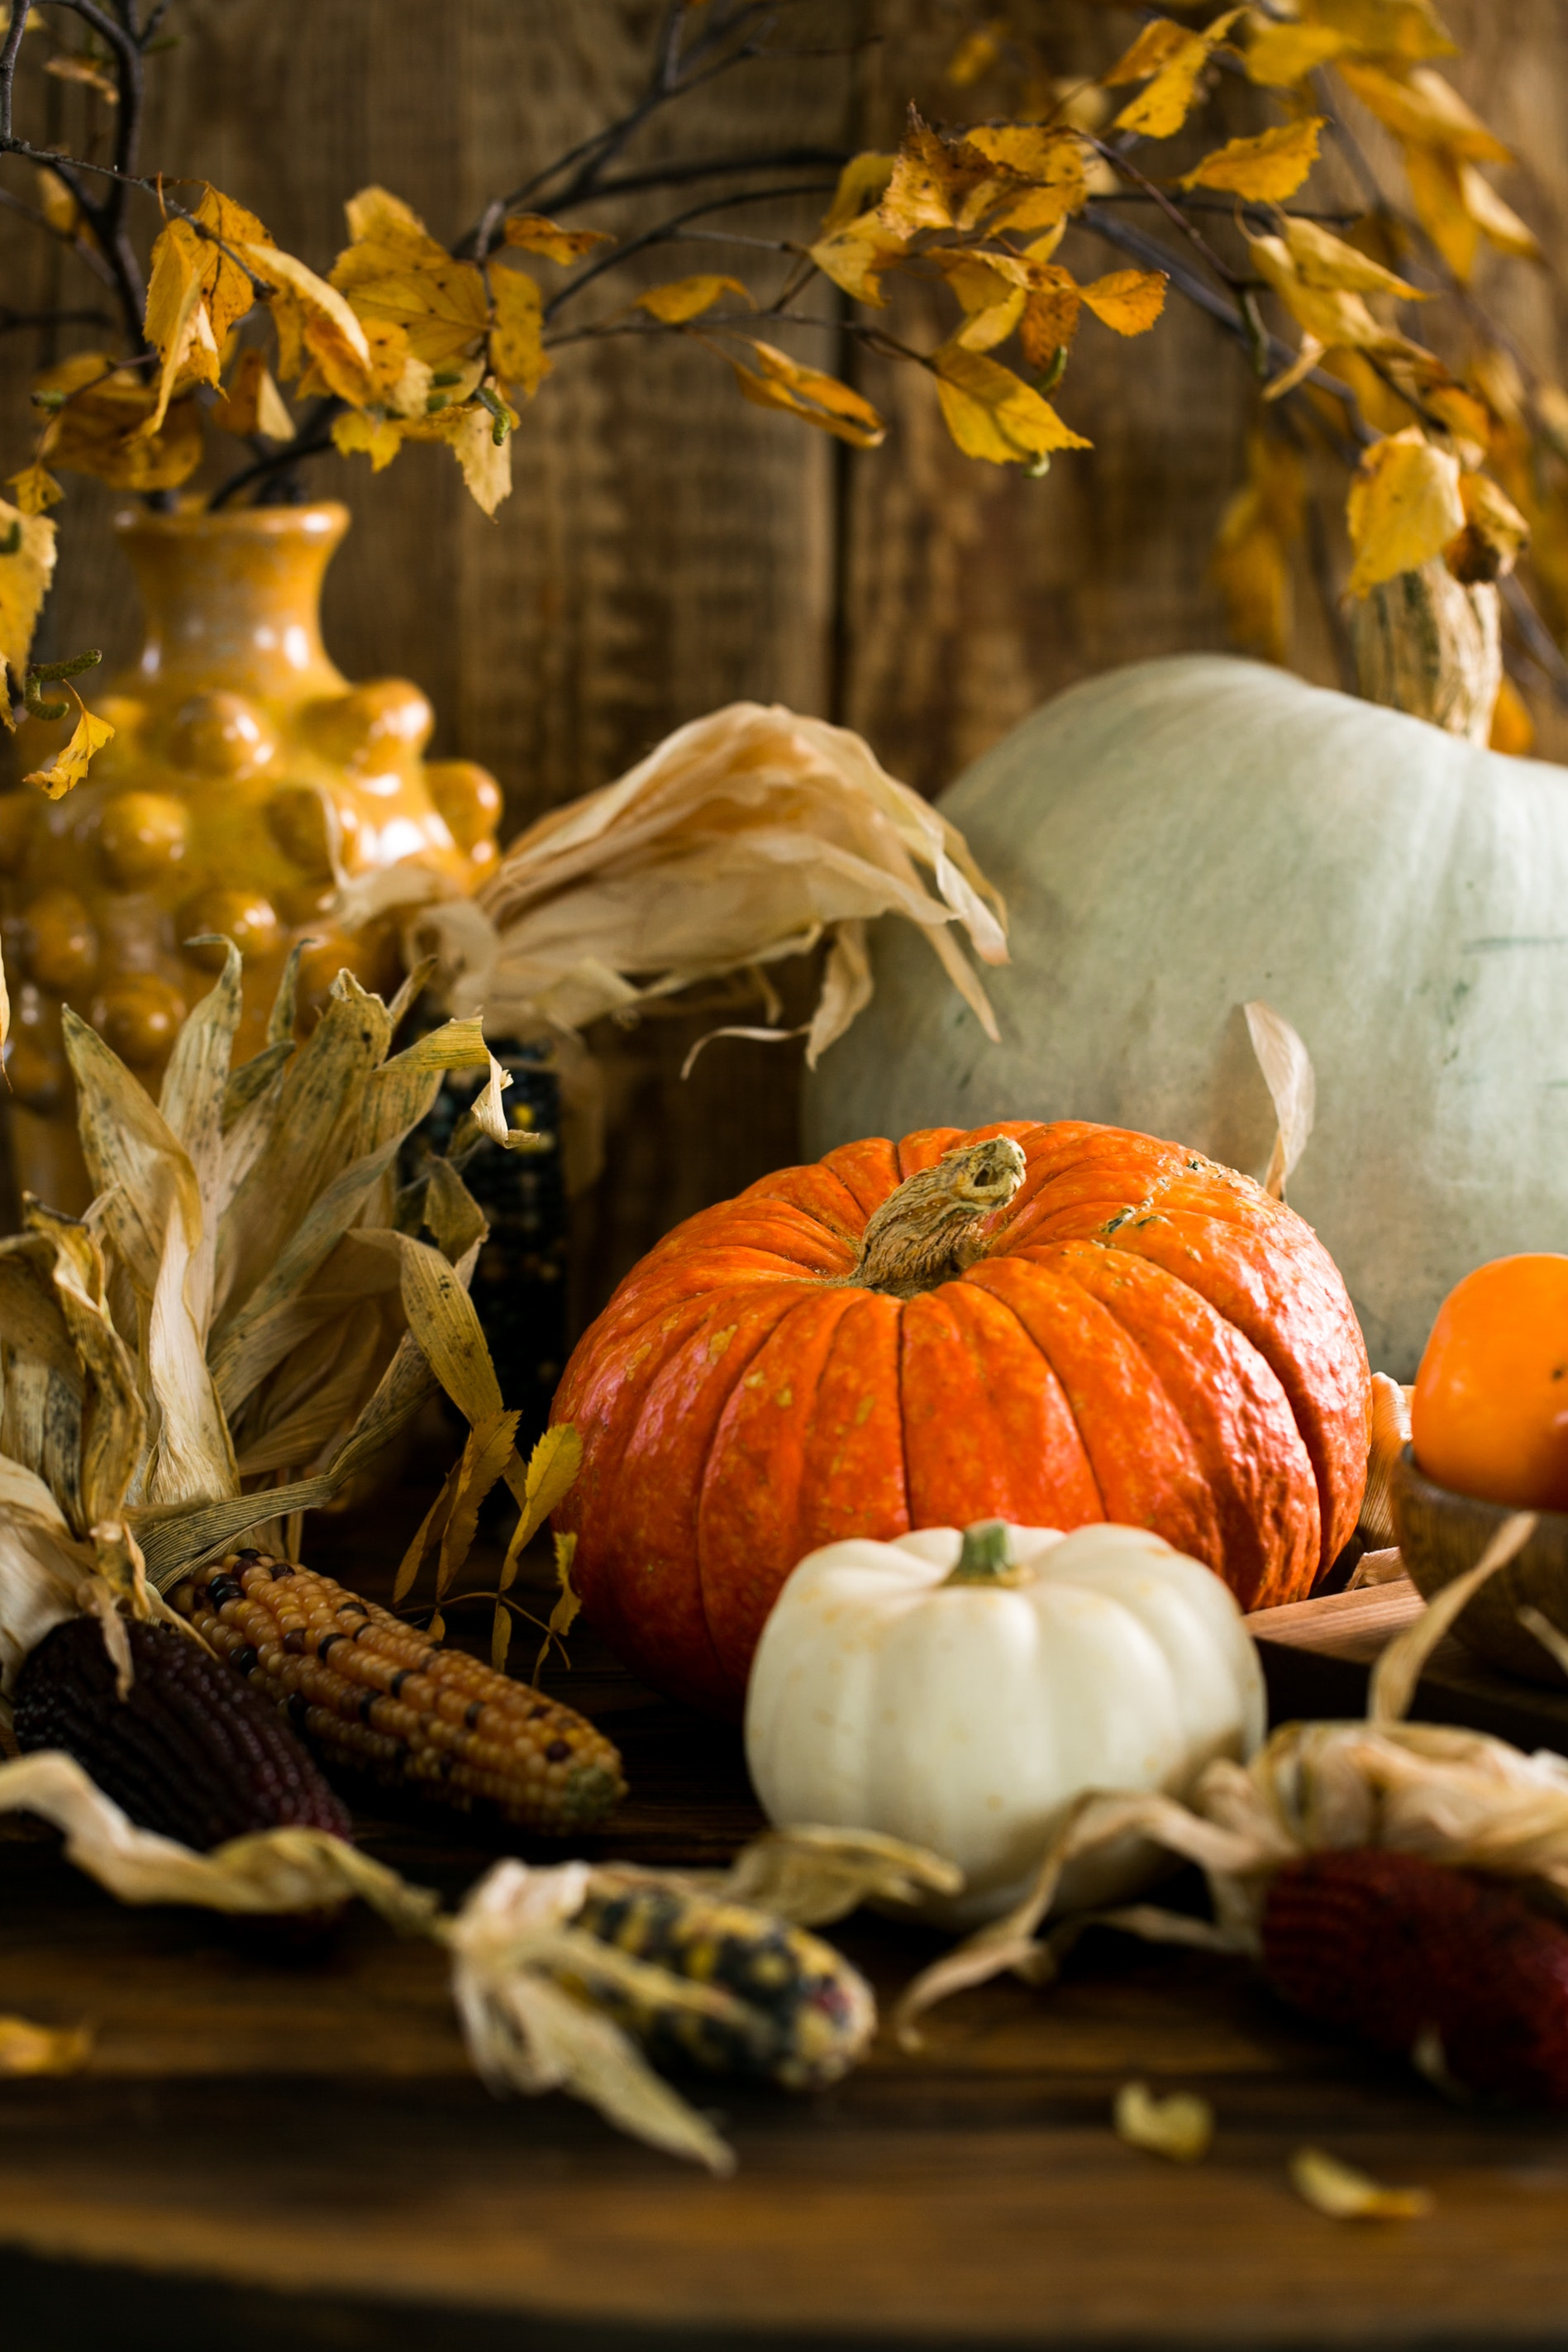 pumpkins-on-a-table-3094075